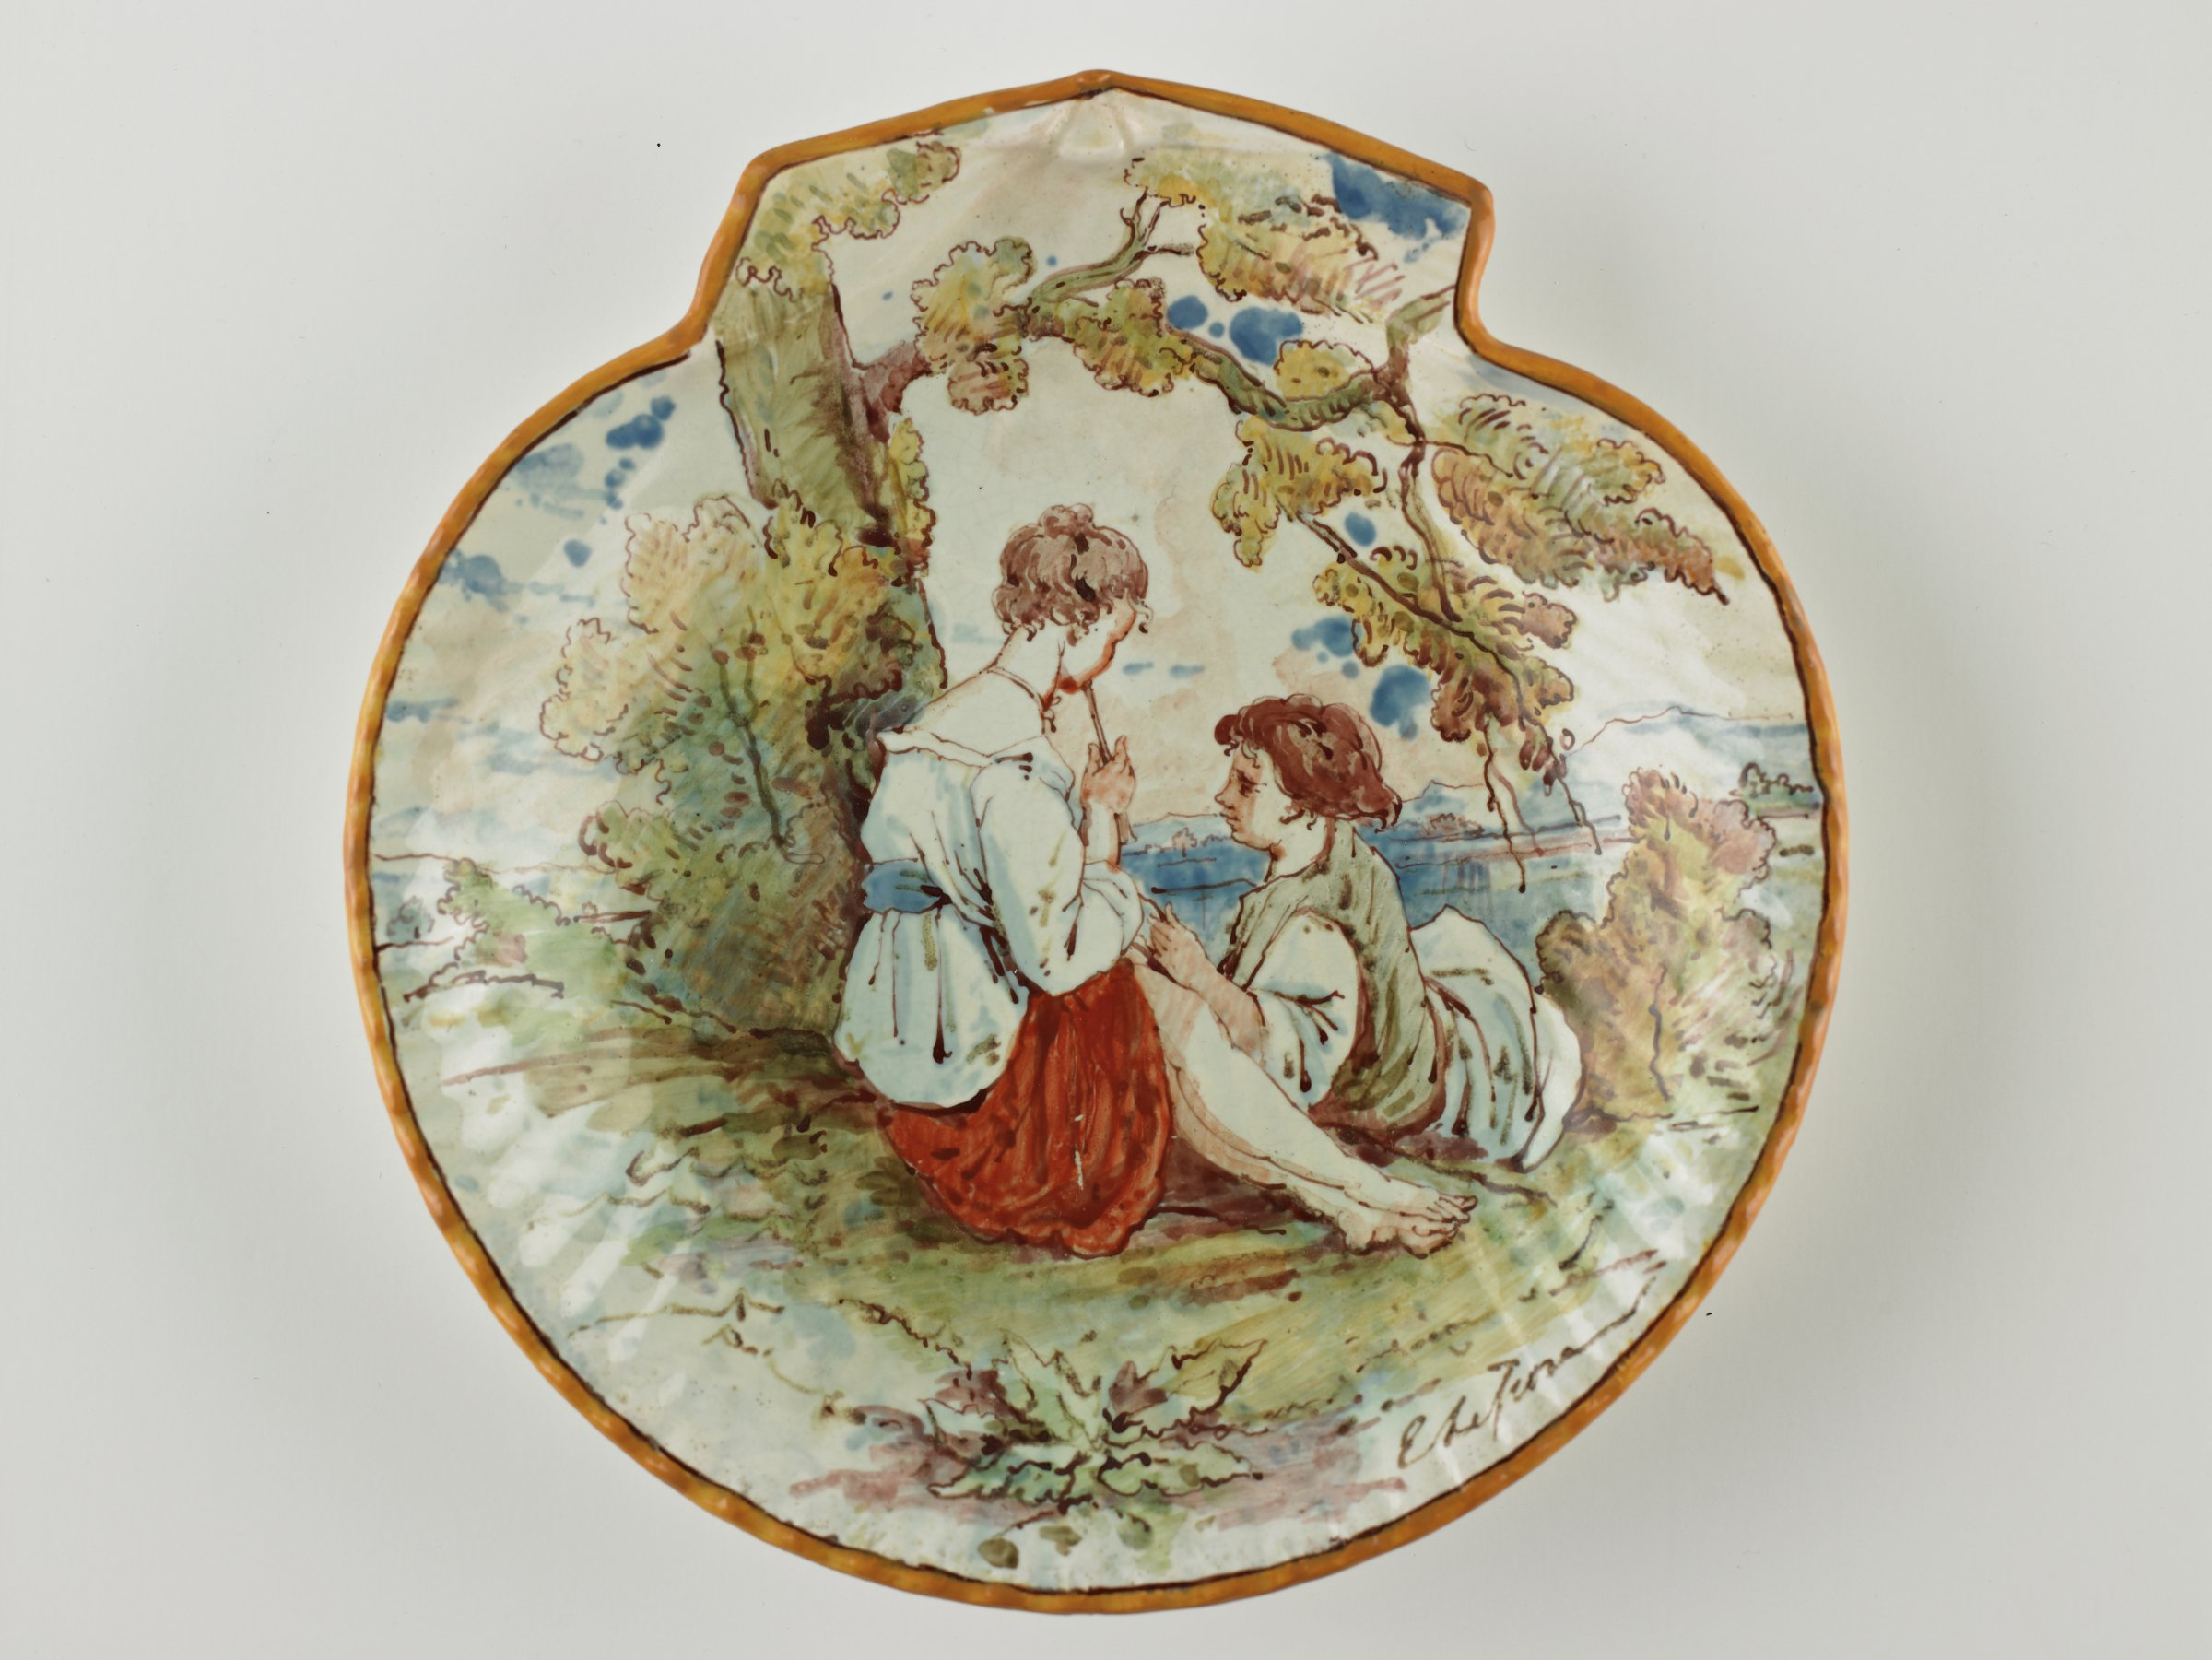 Small, shell-shaped plate with mustard colored edge, in the center the scene of a man and a woman sitting under a tree in a landscape near a water's edge and surrounded by lush flora.  The woman is seated with her knees up wearing a white blouse with blue sash and a red skirt, she plays a recorder while the man leans against her legs, he wears a white tunic and green vest; with blue cloud-like smudges in the sky.